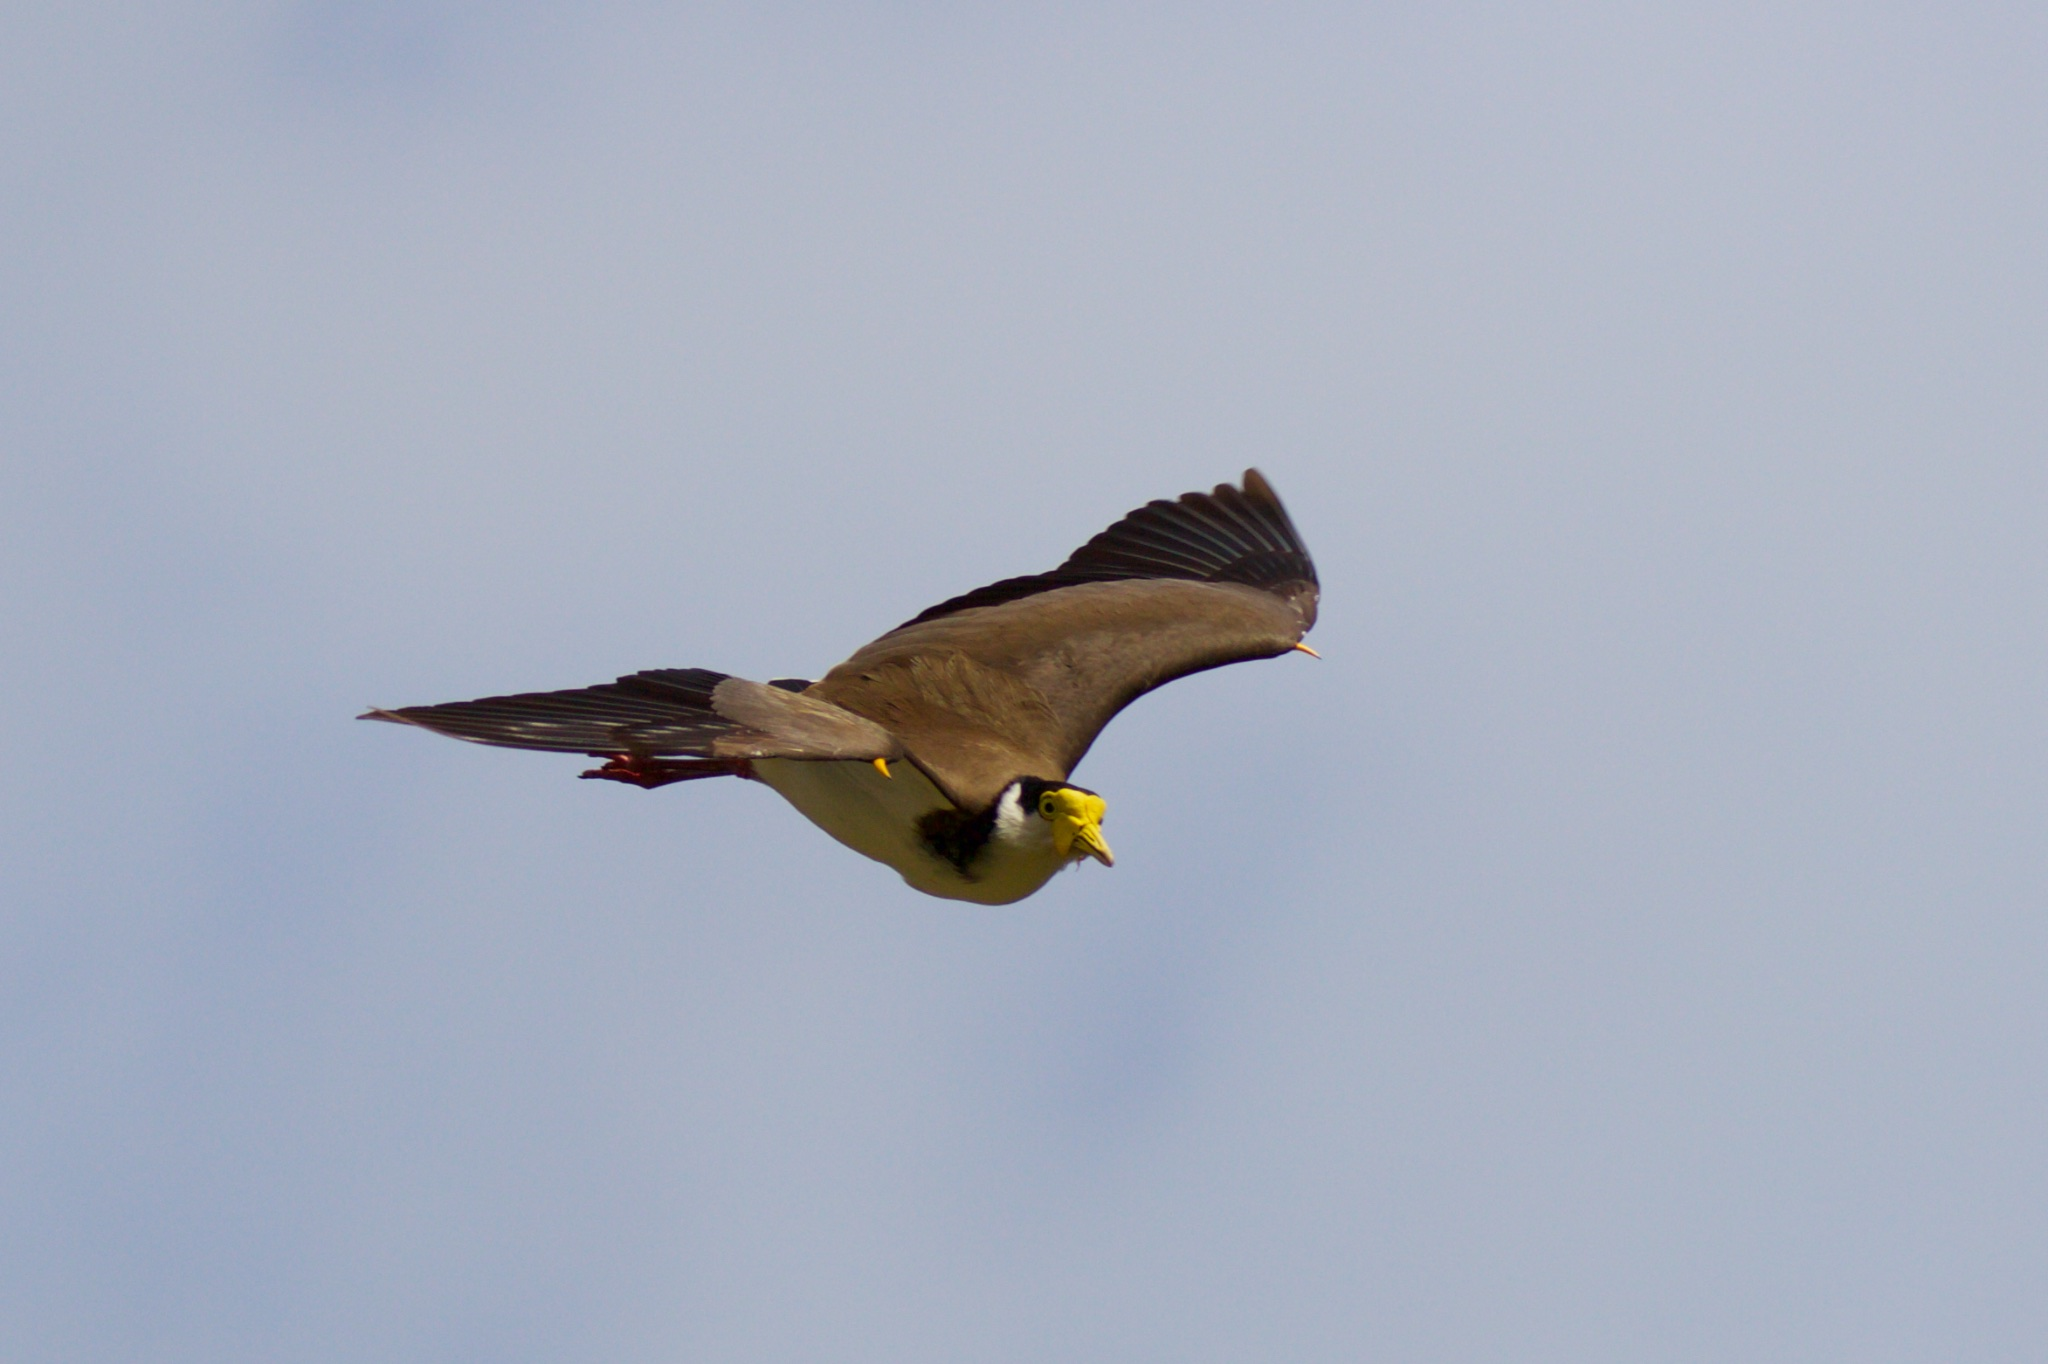 Masked Lapwing swooping